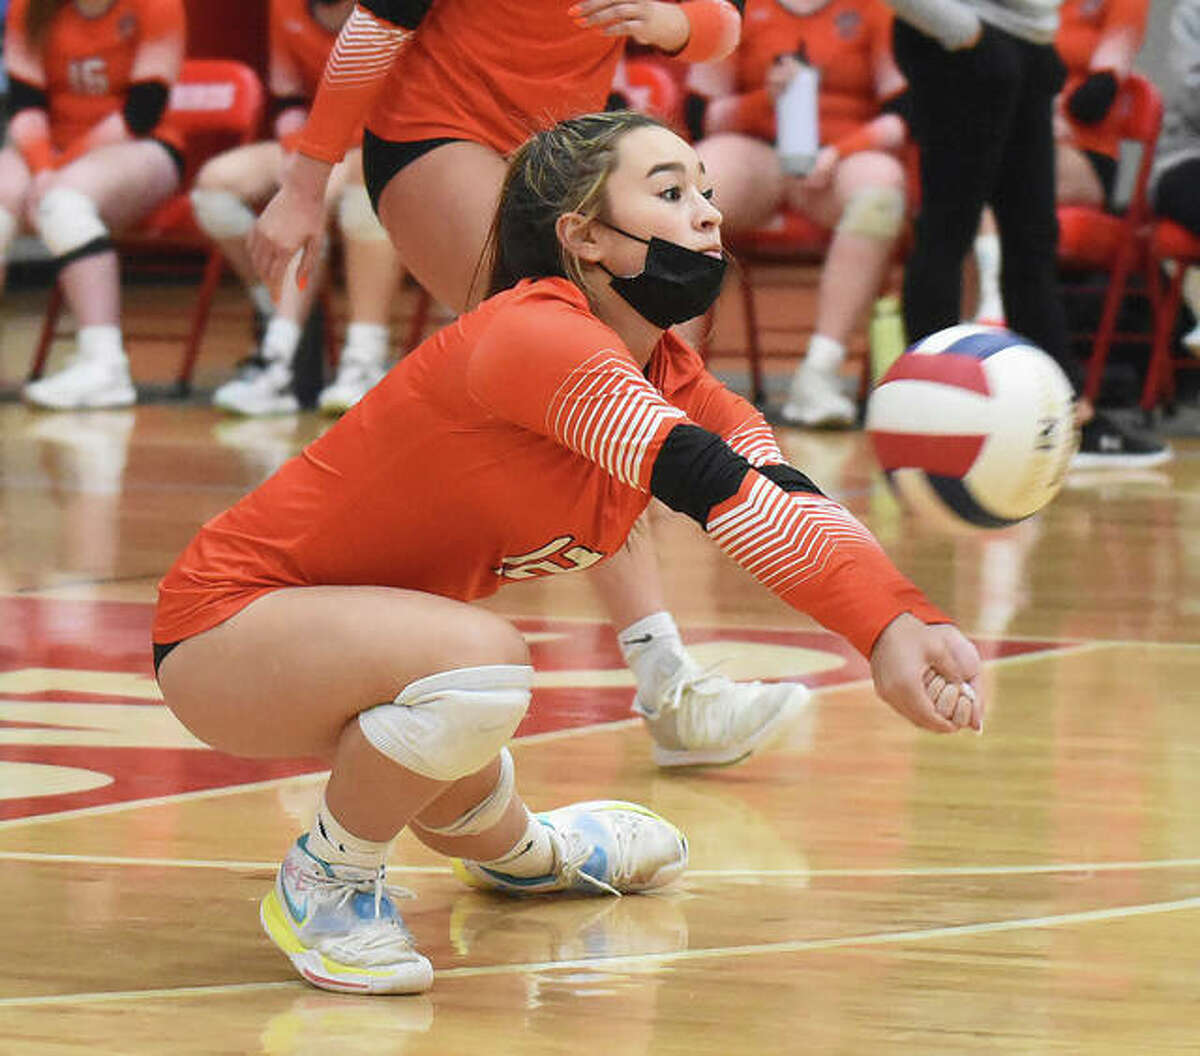 Edwardsville's Hanna Matarelli successfully receives a serve during the second set against the Alton Redbirds on Tuesday in Alton.